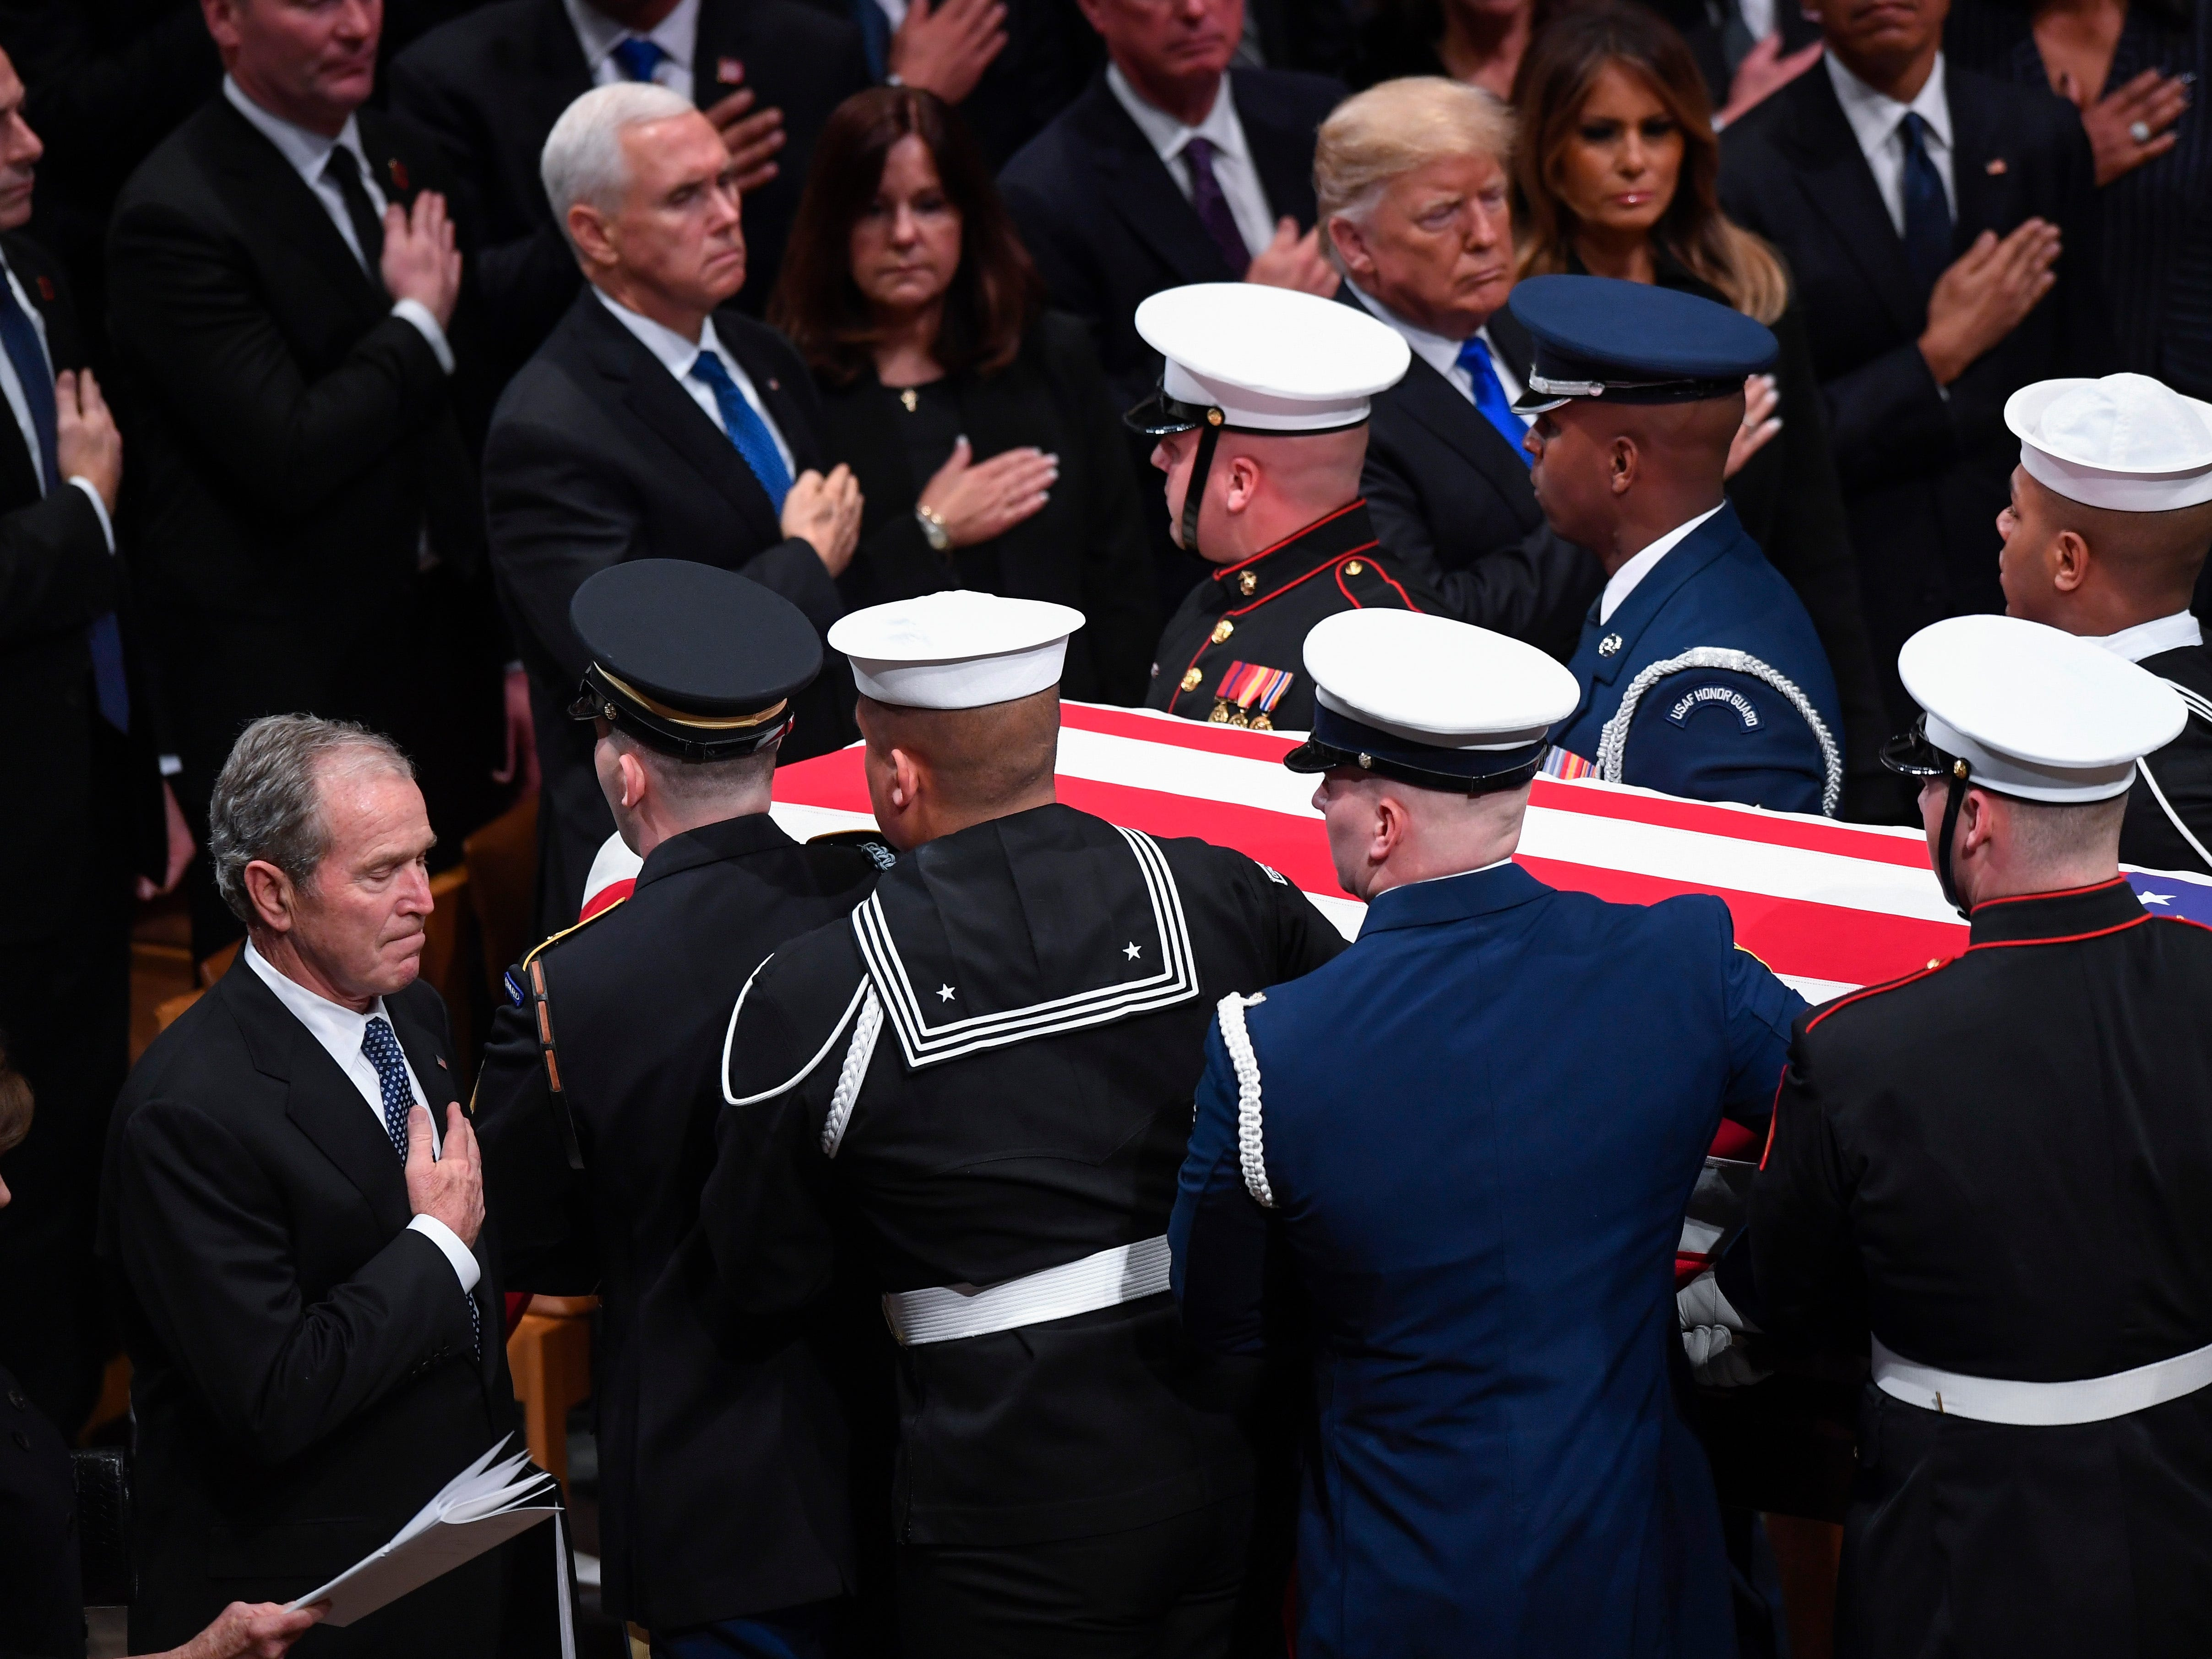 Former President George W. Bush, with hand on heart, stands as his father, former President George H.W. Bush is carried from the Washington National Cathedral at the conclusion of the State Funeral service on Dec. 5, 2018.